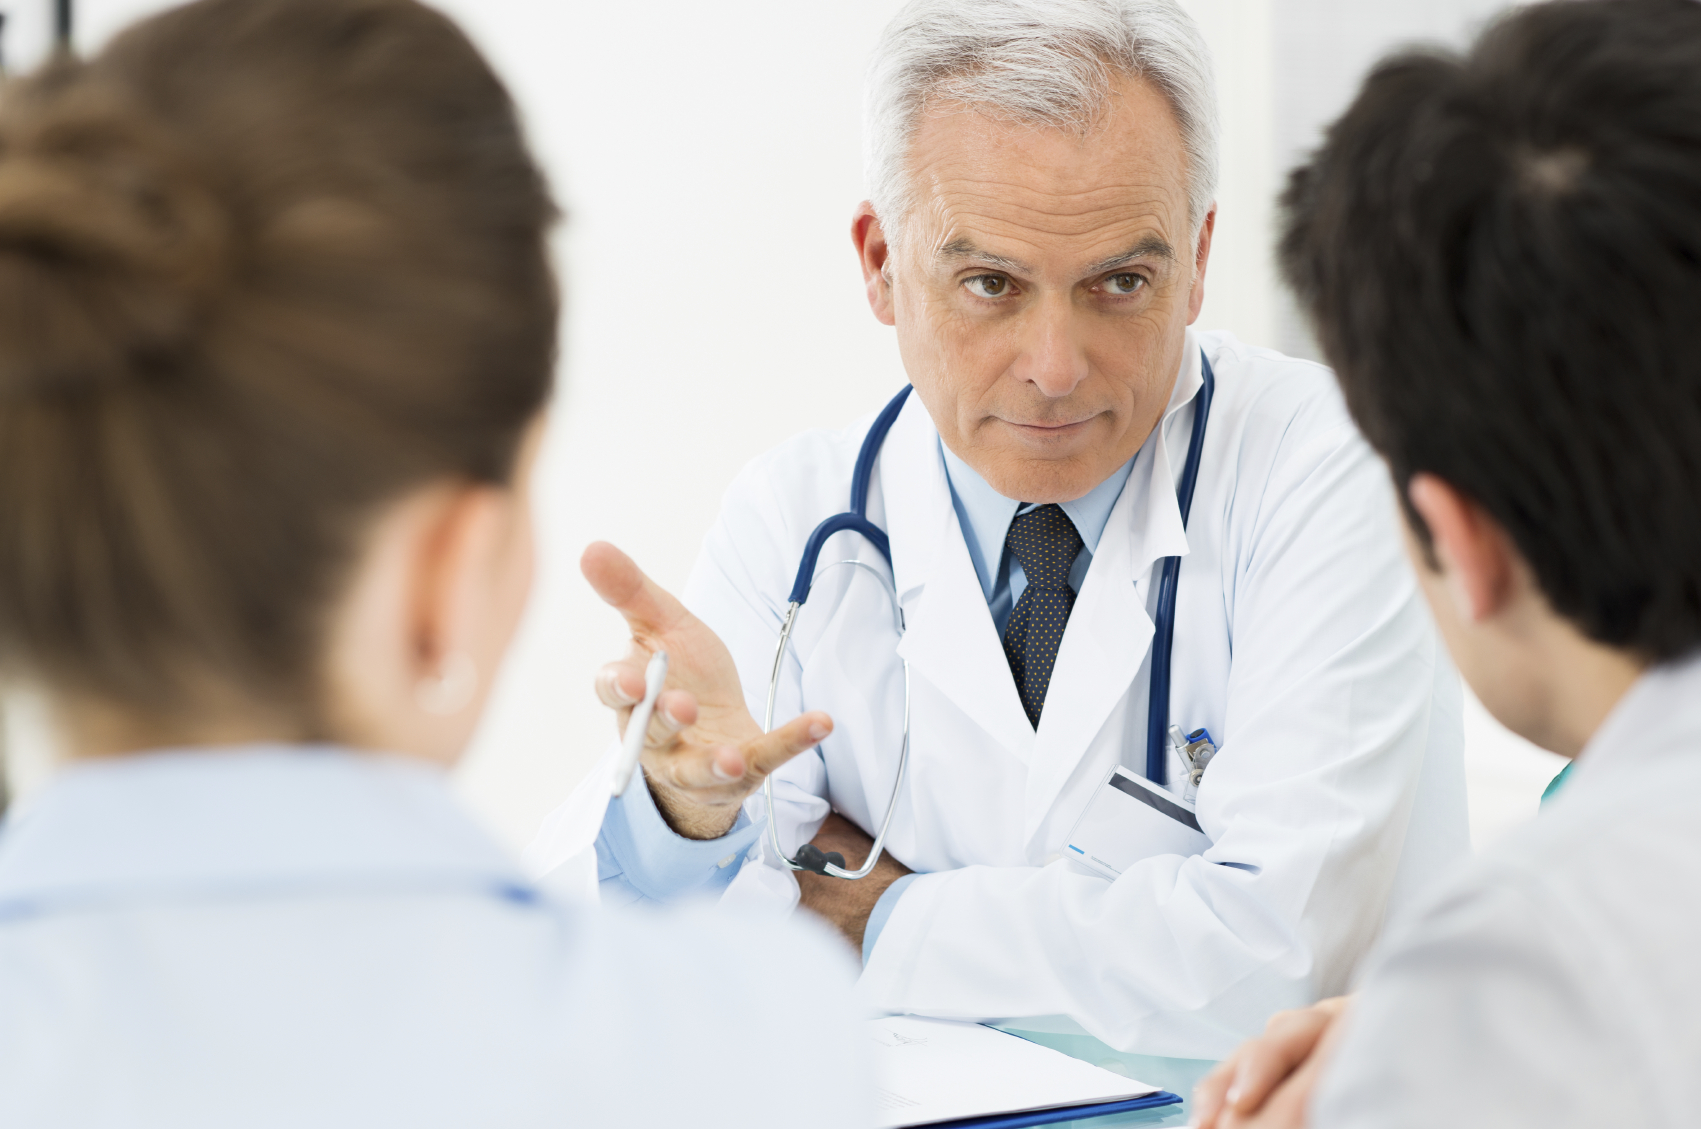 Doctor Visits: 6 Things To Consider